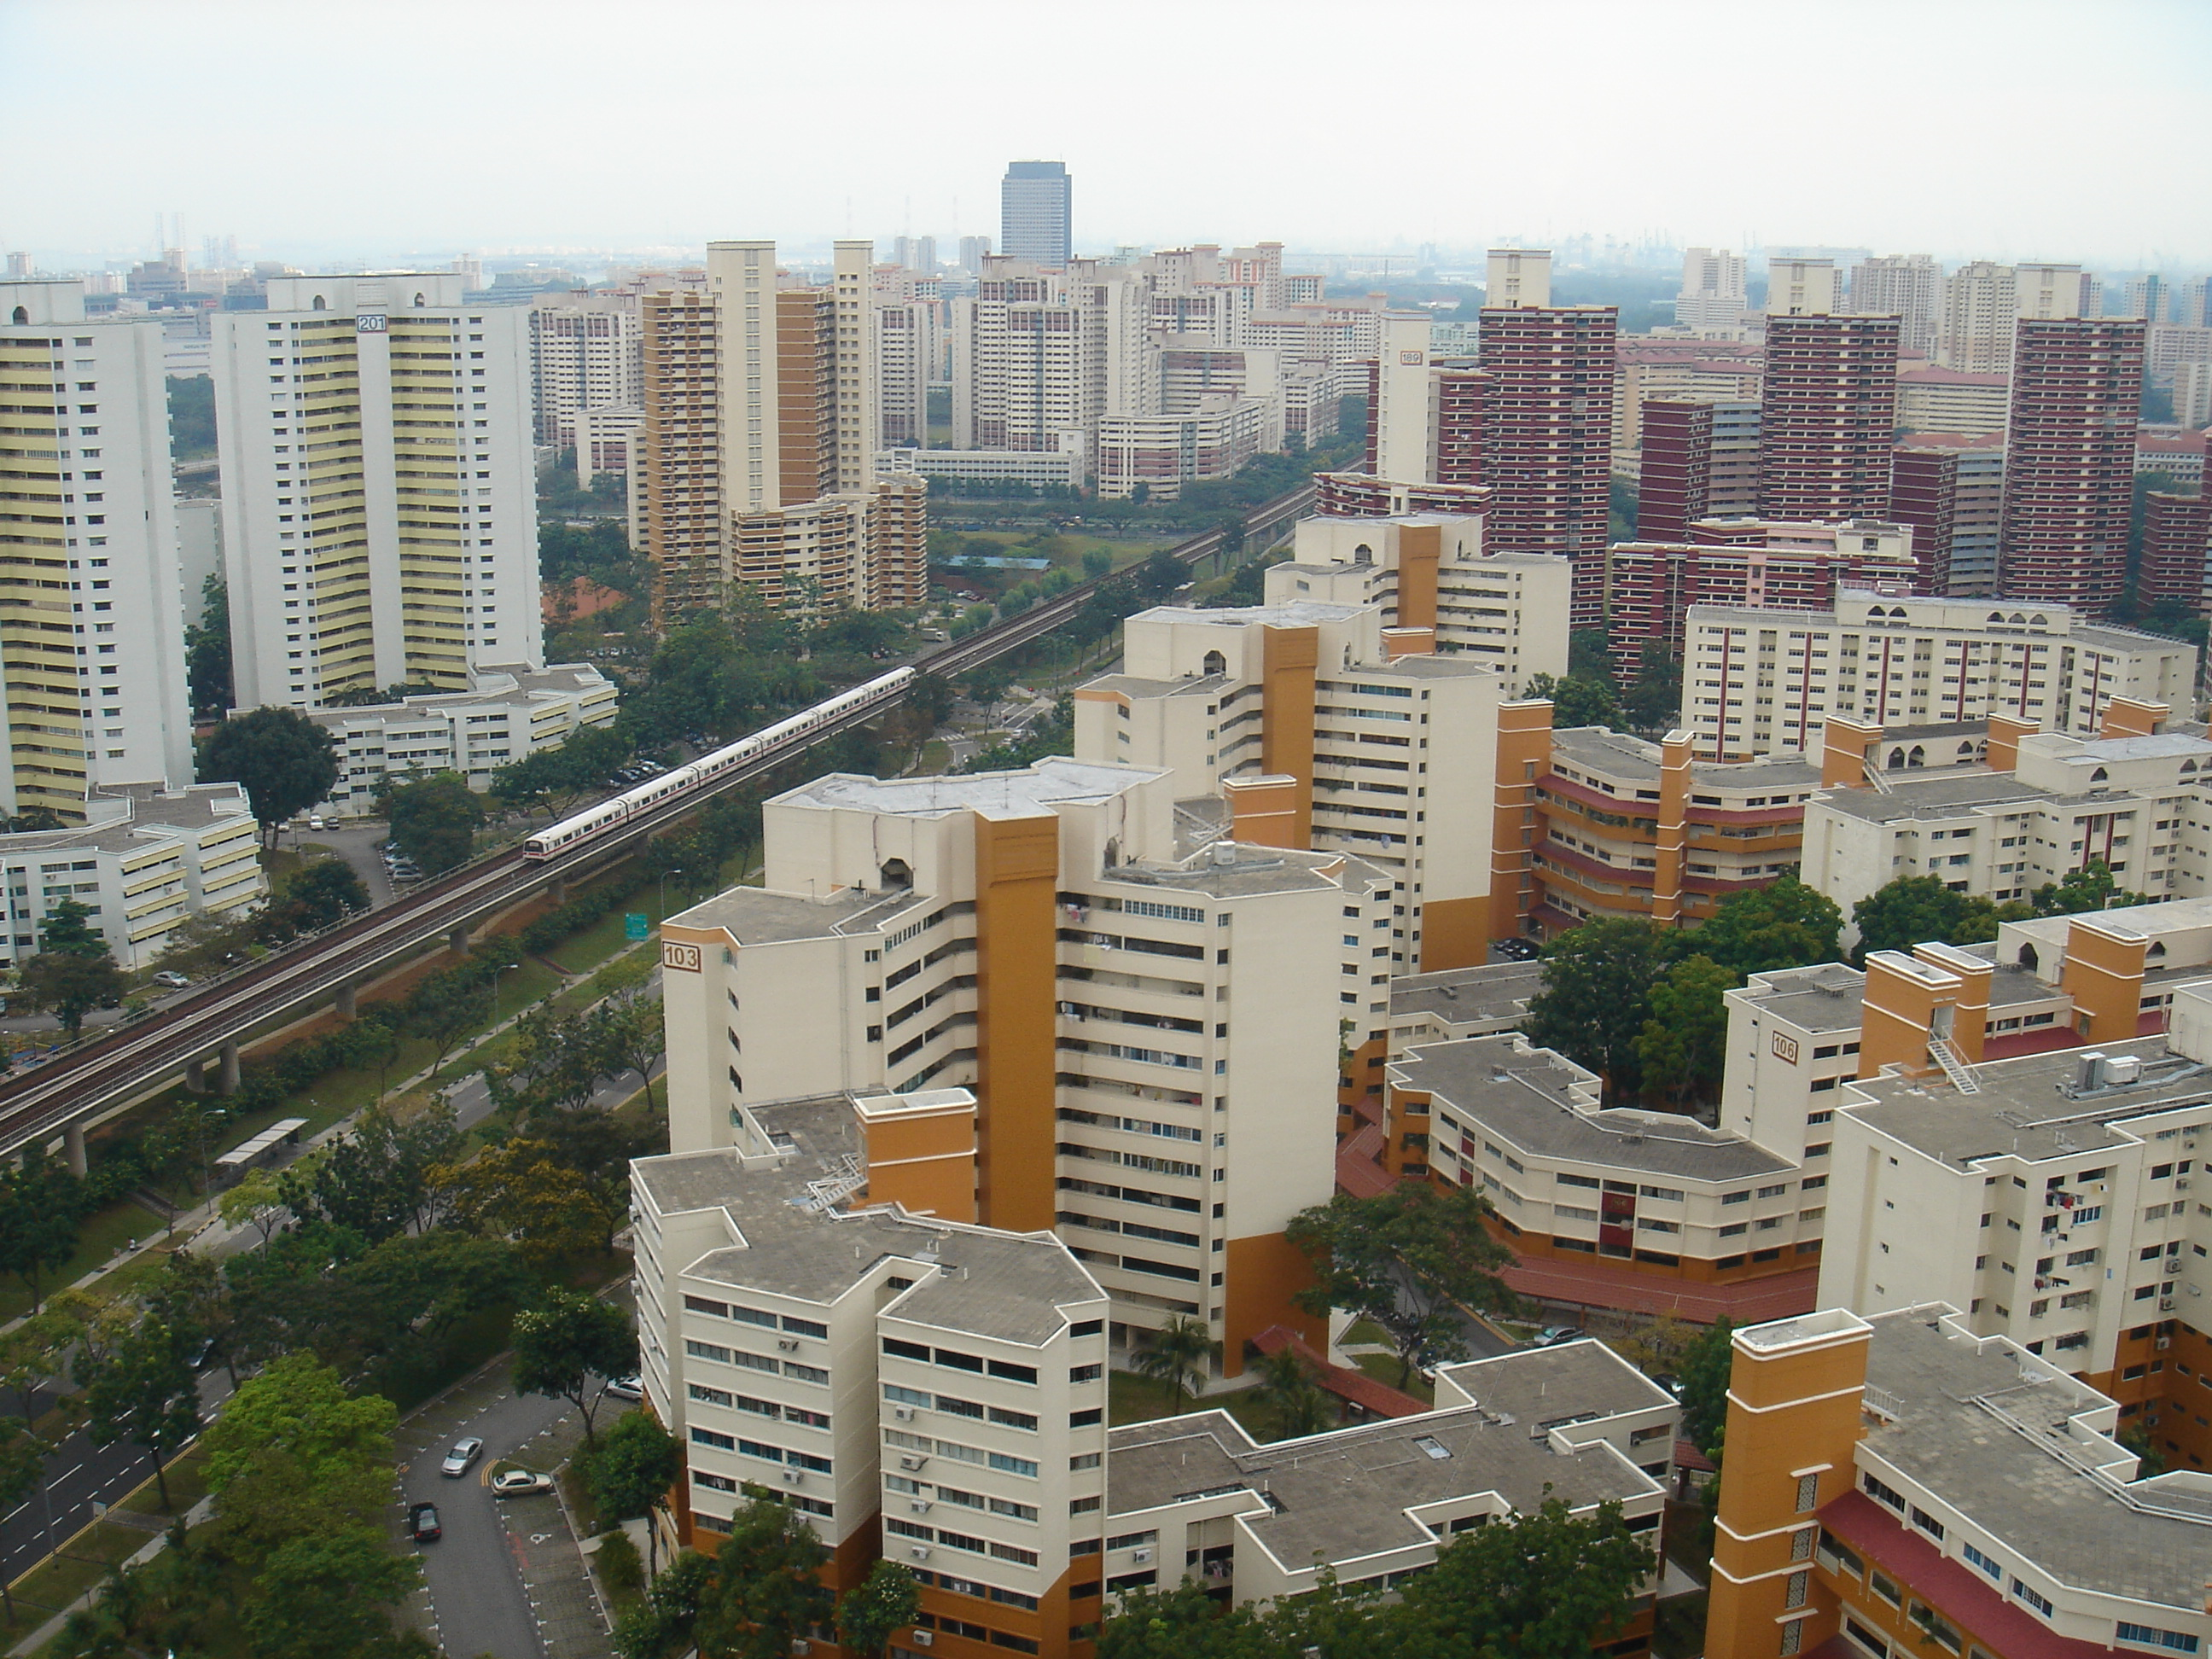 The construction of new towns by the Housing Development Board of Singapore, is an example of planned urbanization